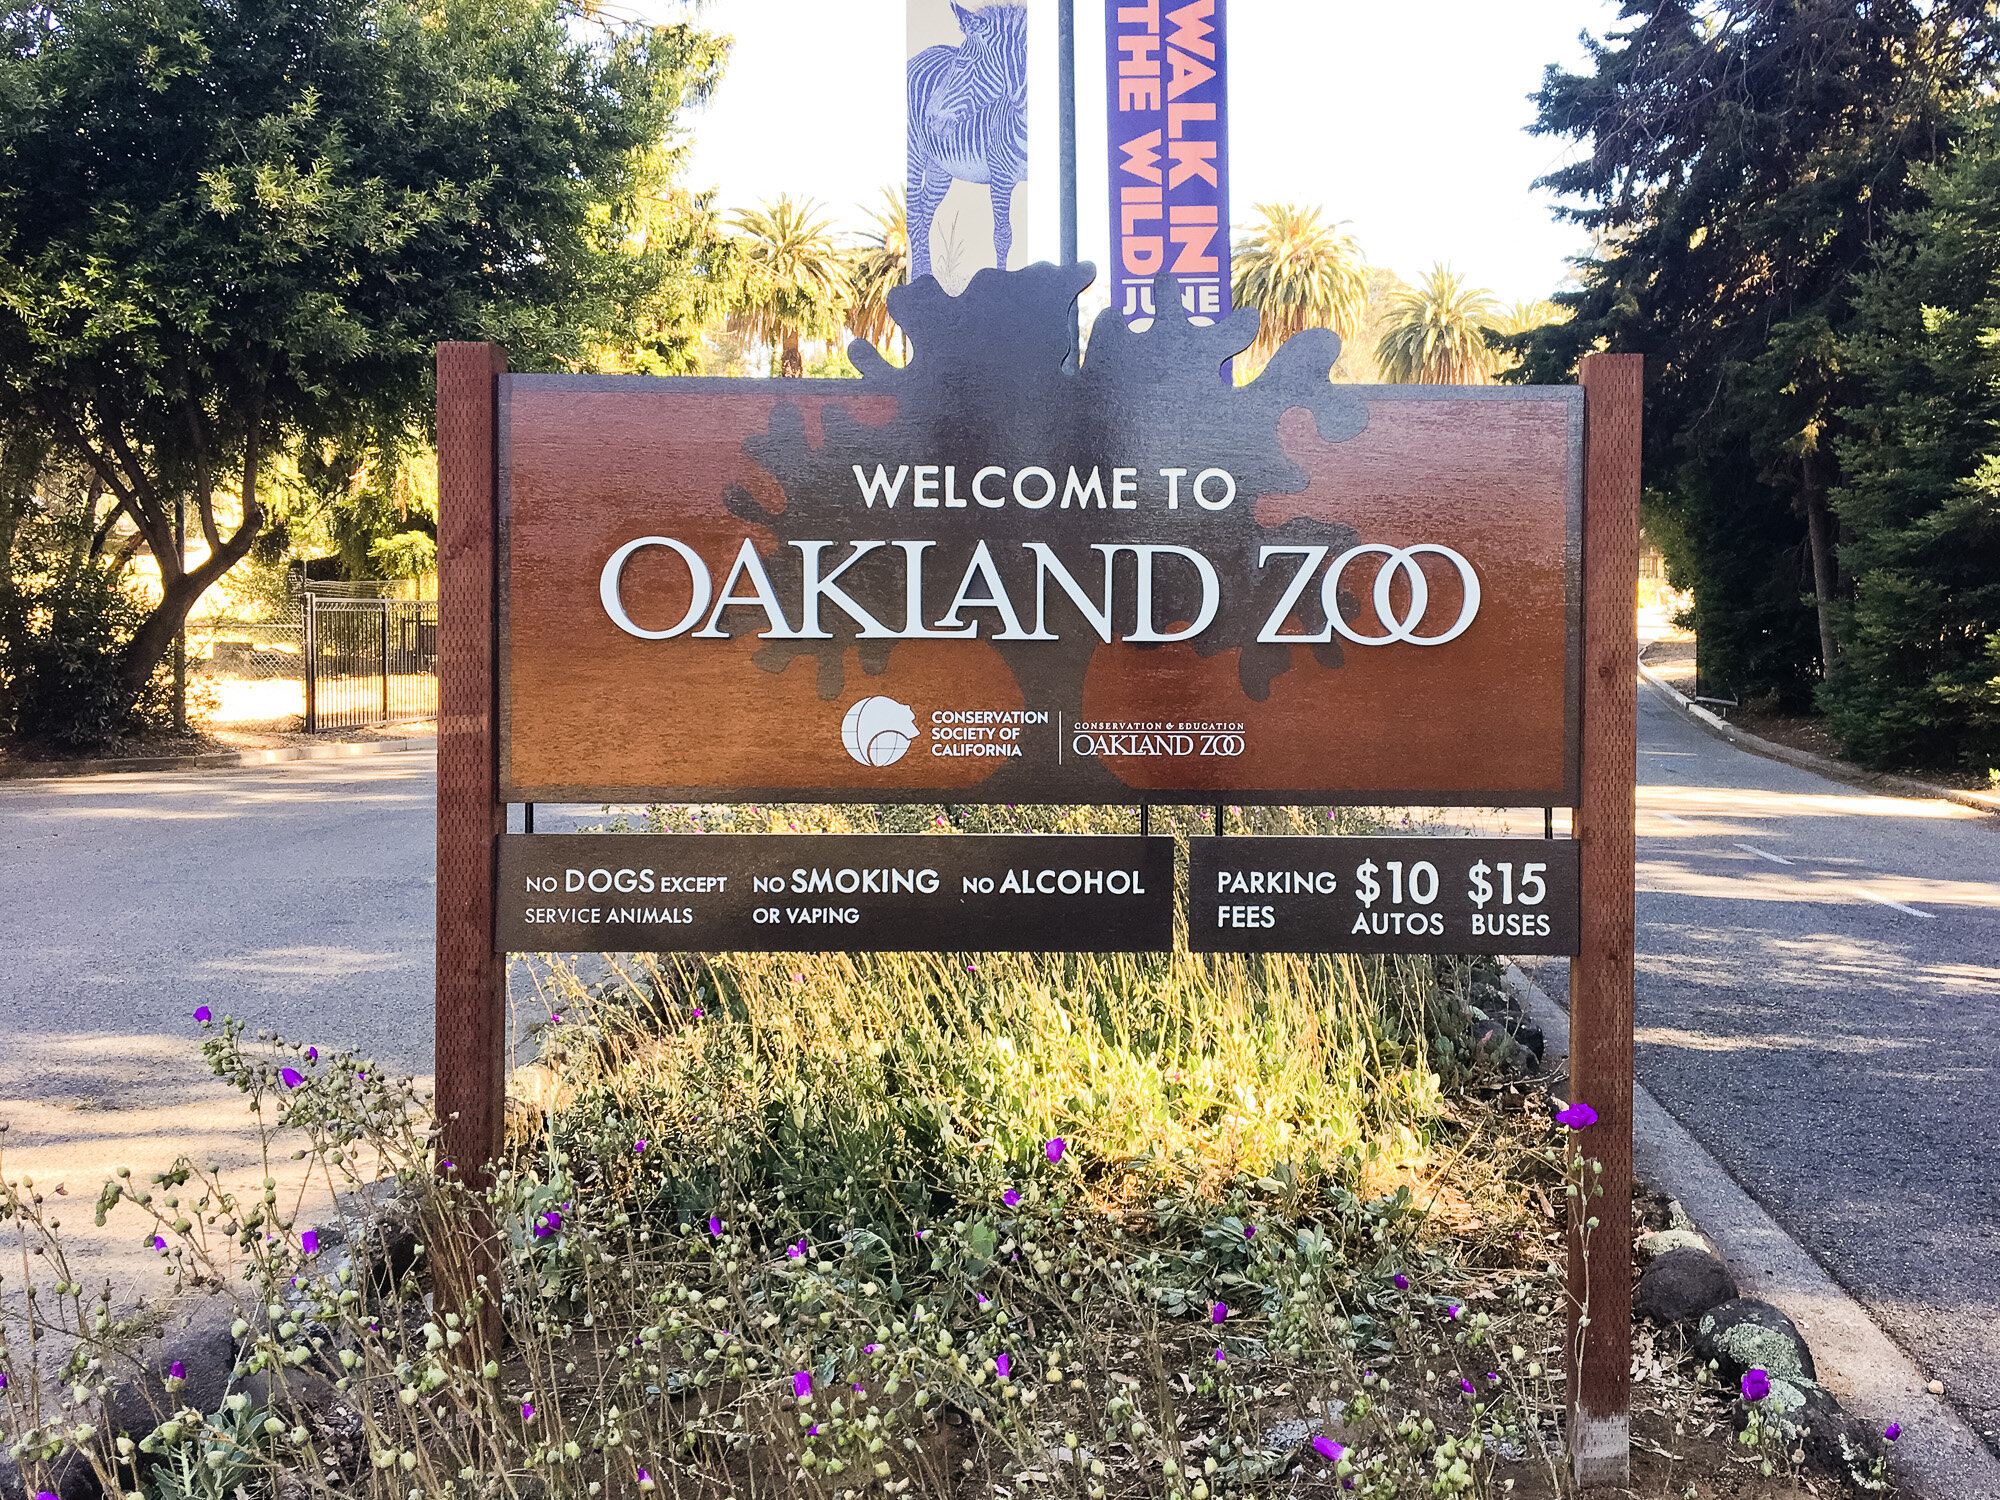 Welcome sign at Oakland Zoo